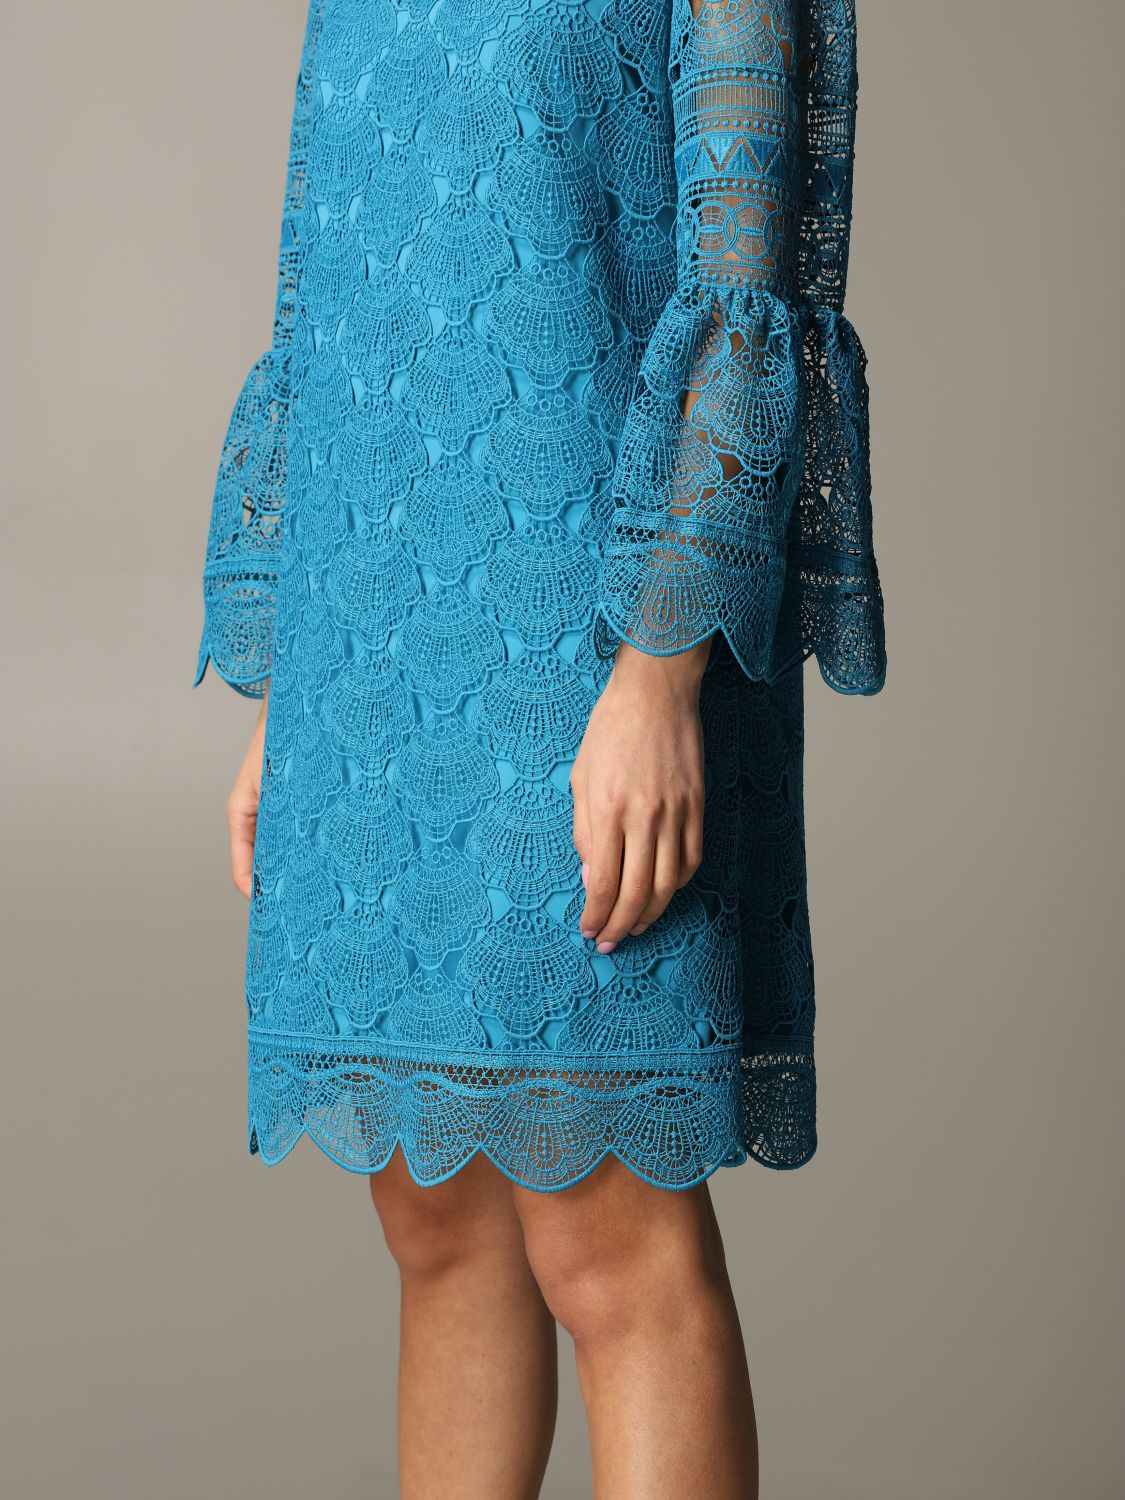 Dress Alberta Ferretti: Dress women Alberta Ferretti gnawed blue 4